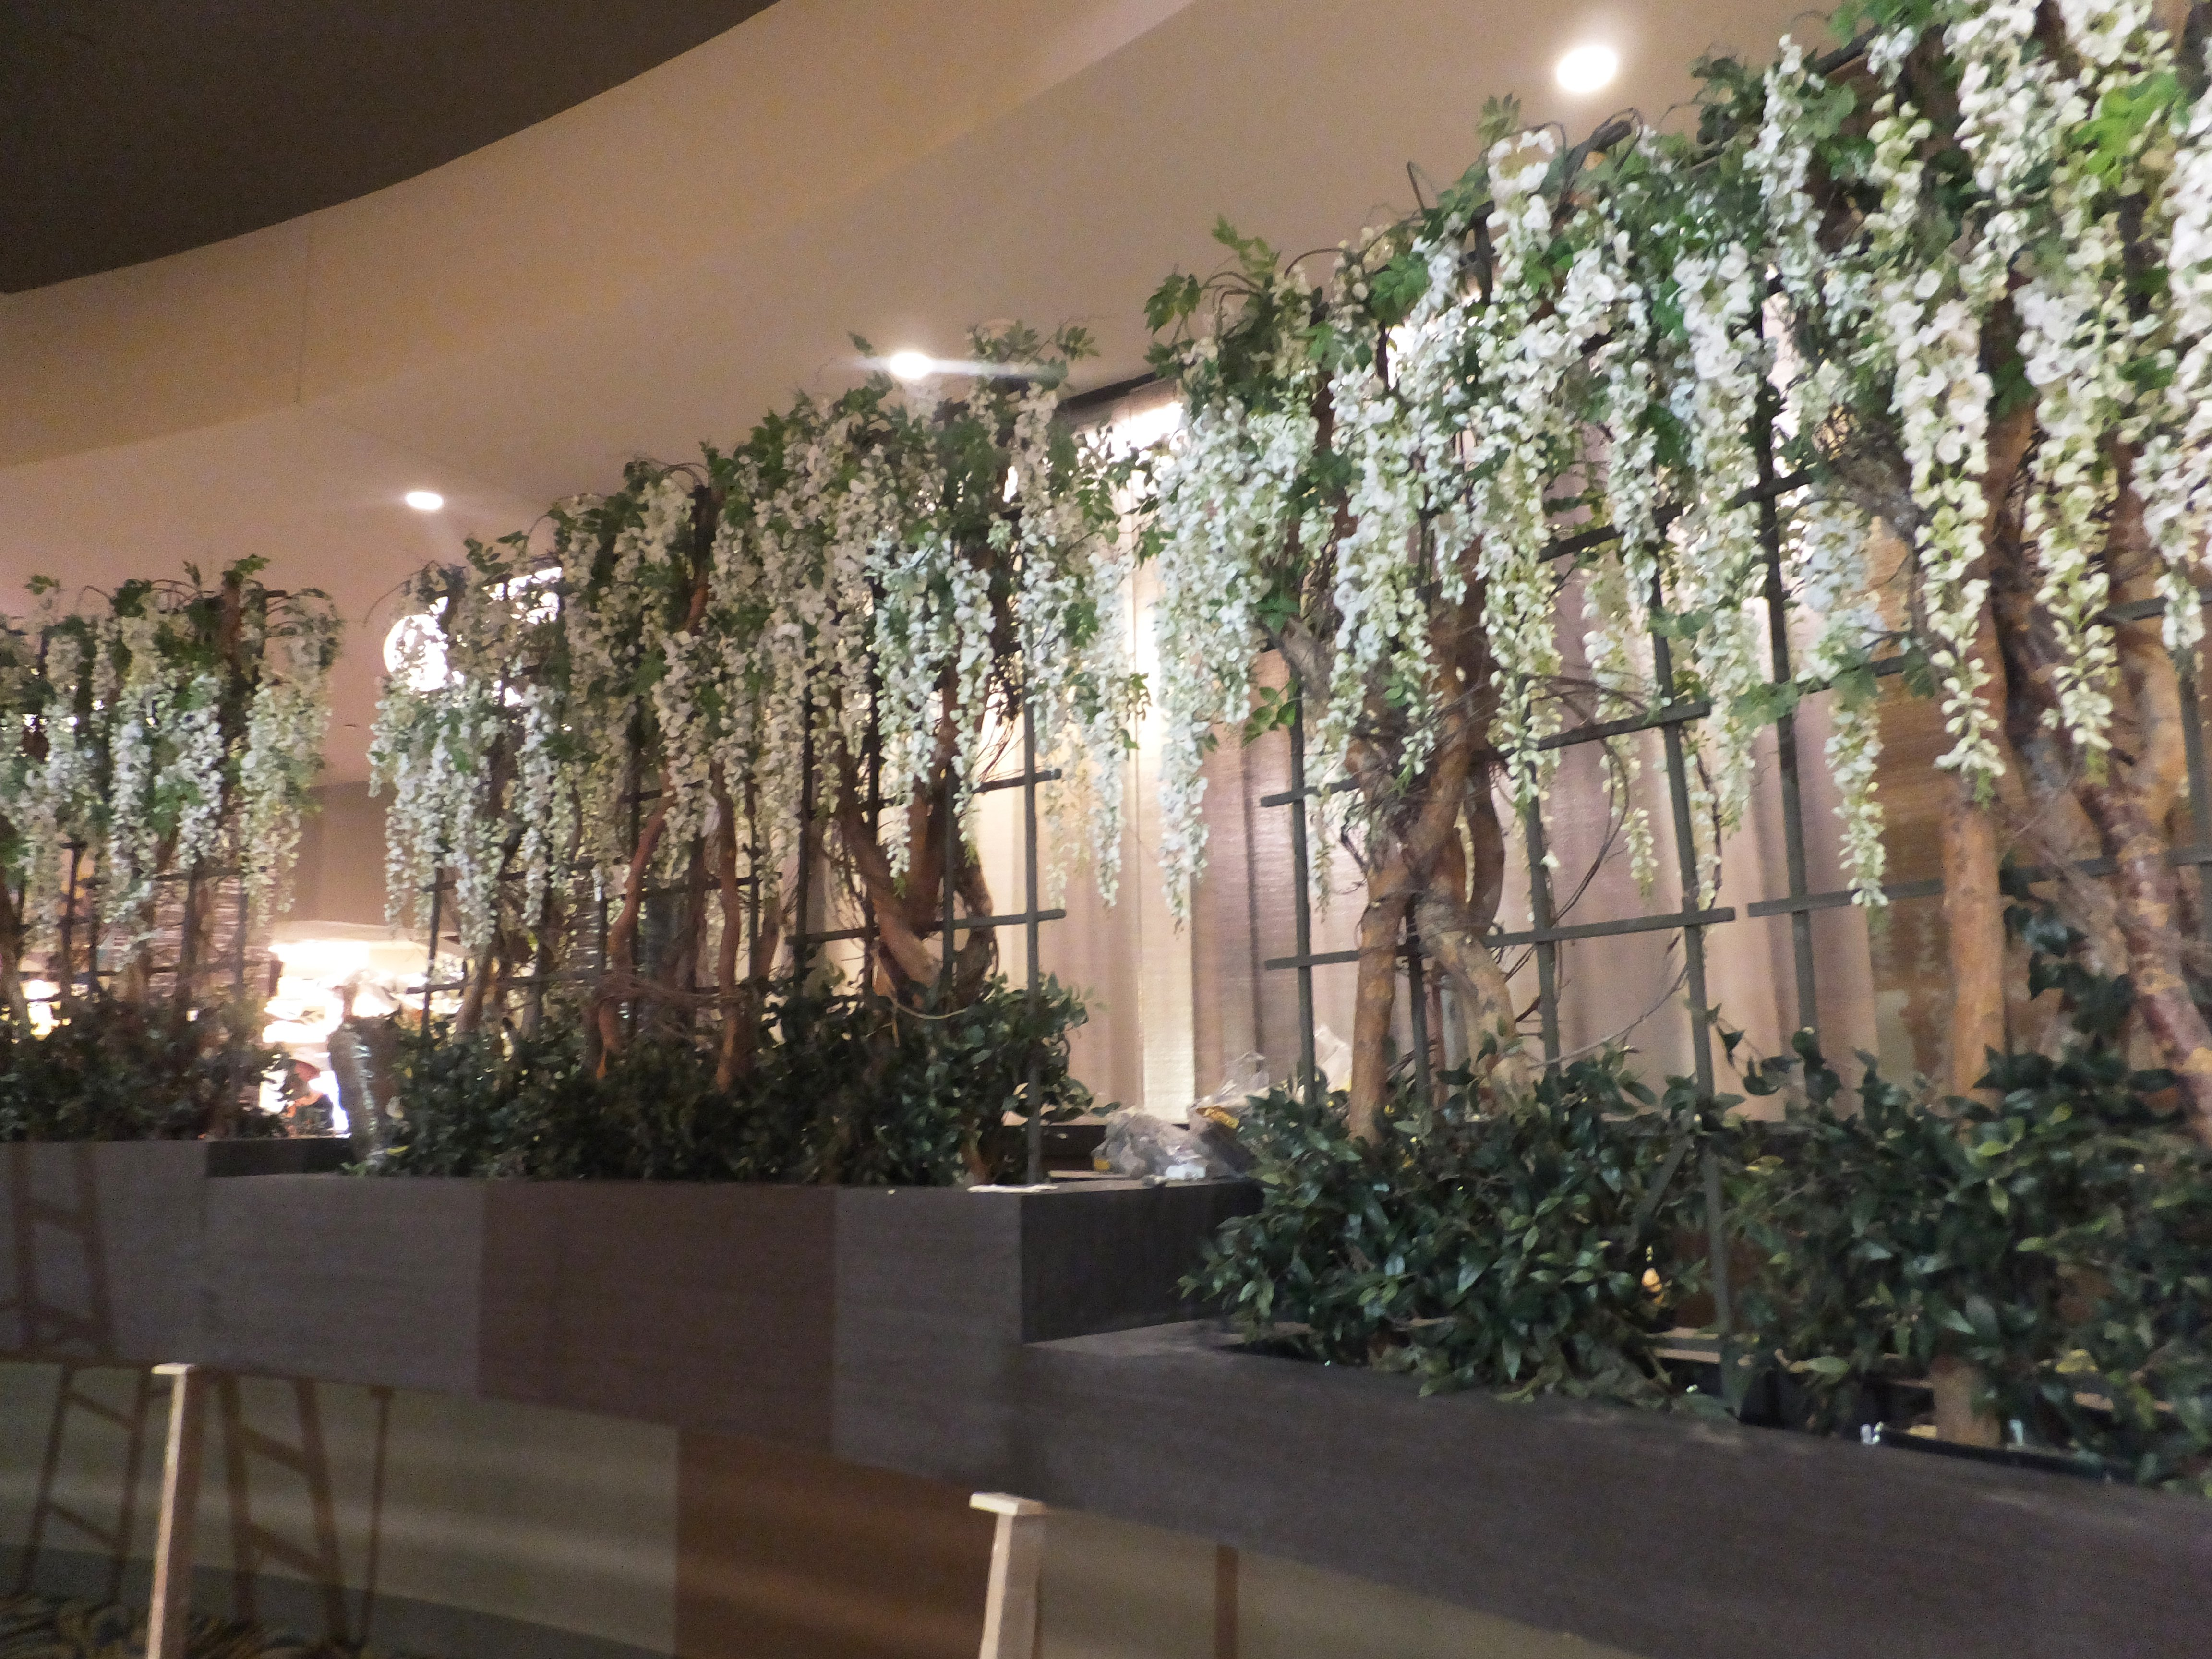 Interior Design  Faux Foliage  Silk Plants  Flowers and Trees   Make     Hawaiian Gardens casino